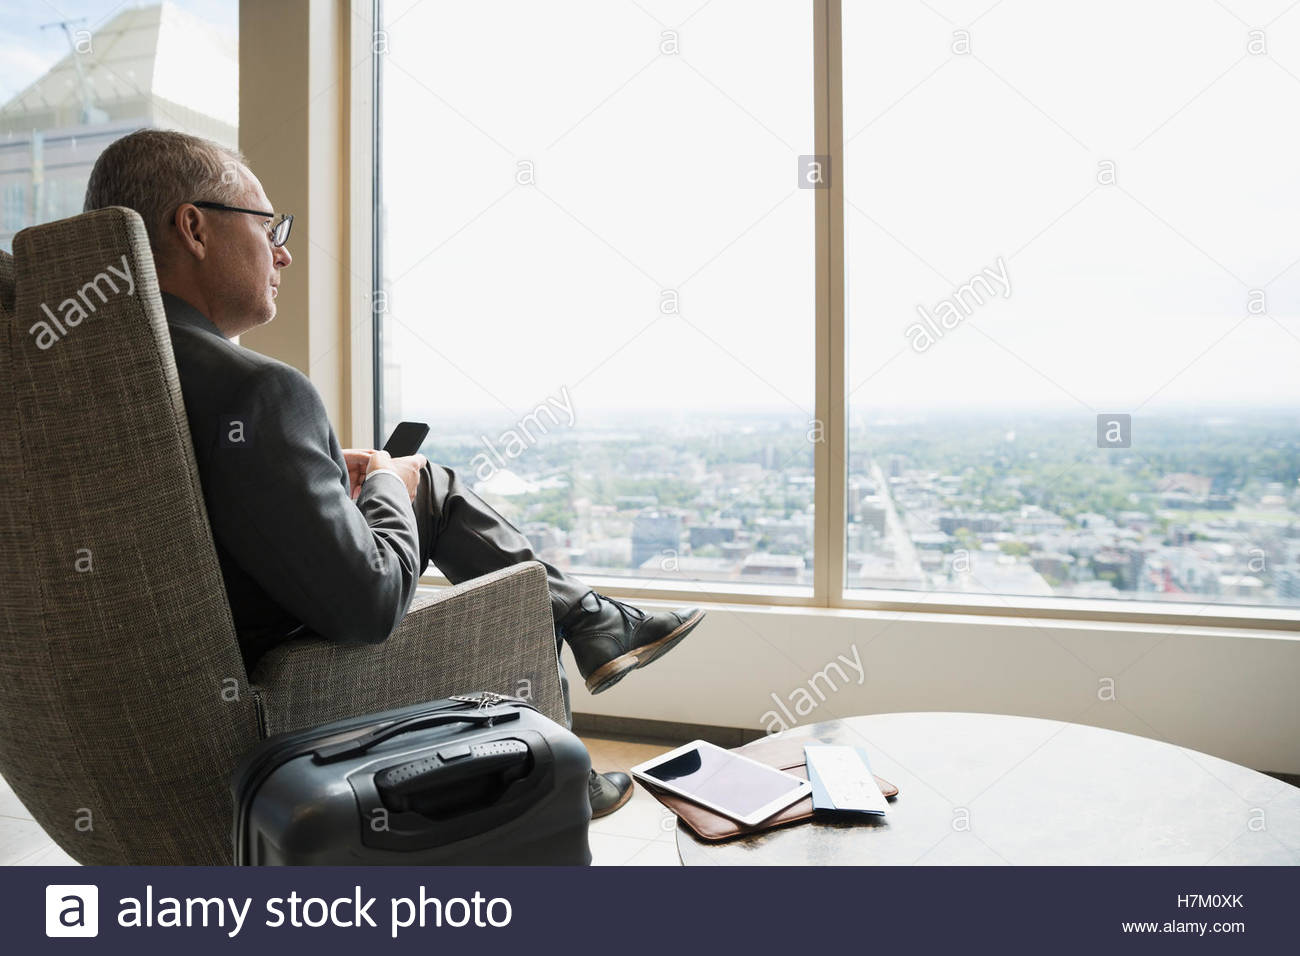 Pensive businessman with luggage texting looking out window in airport lounge - Stock Image